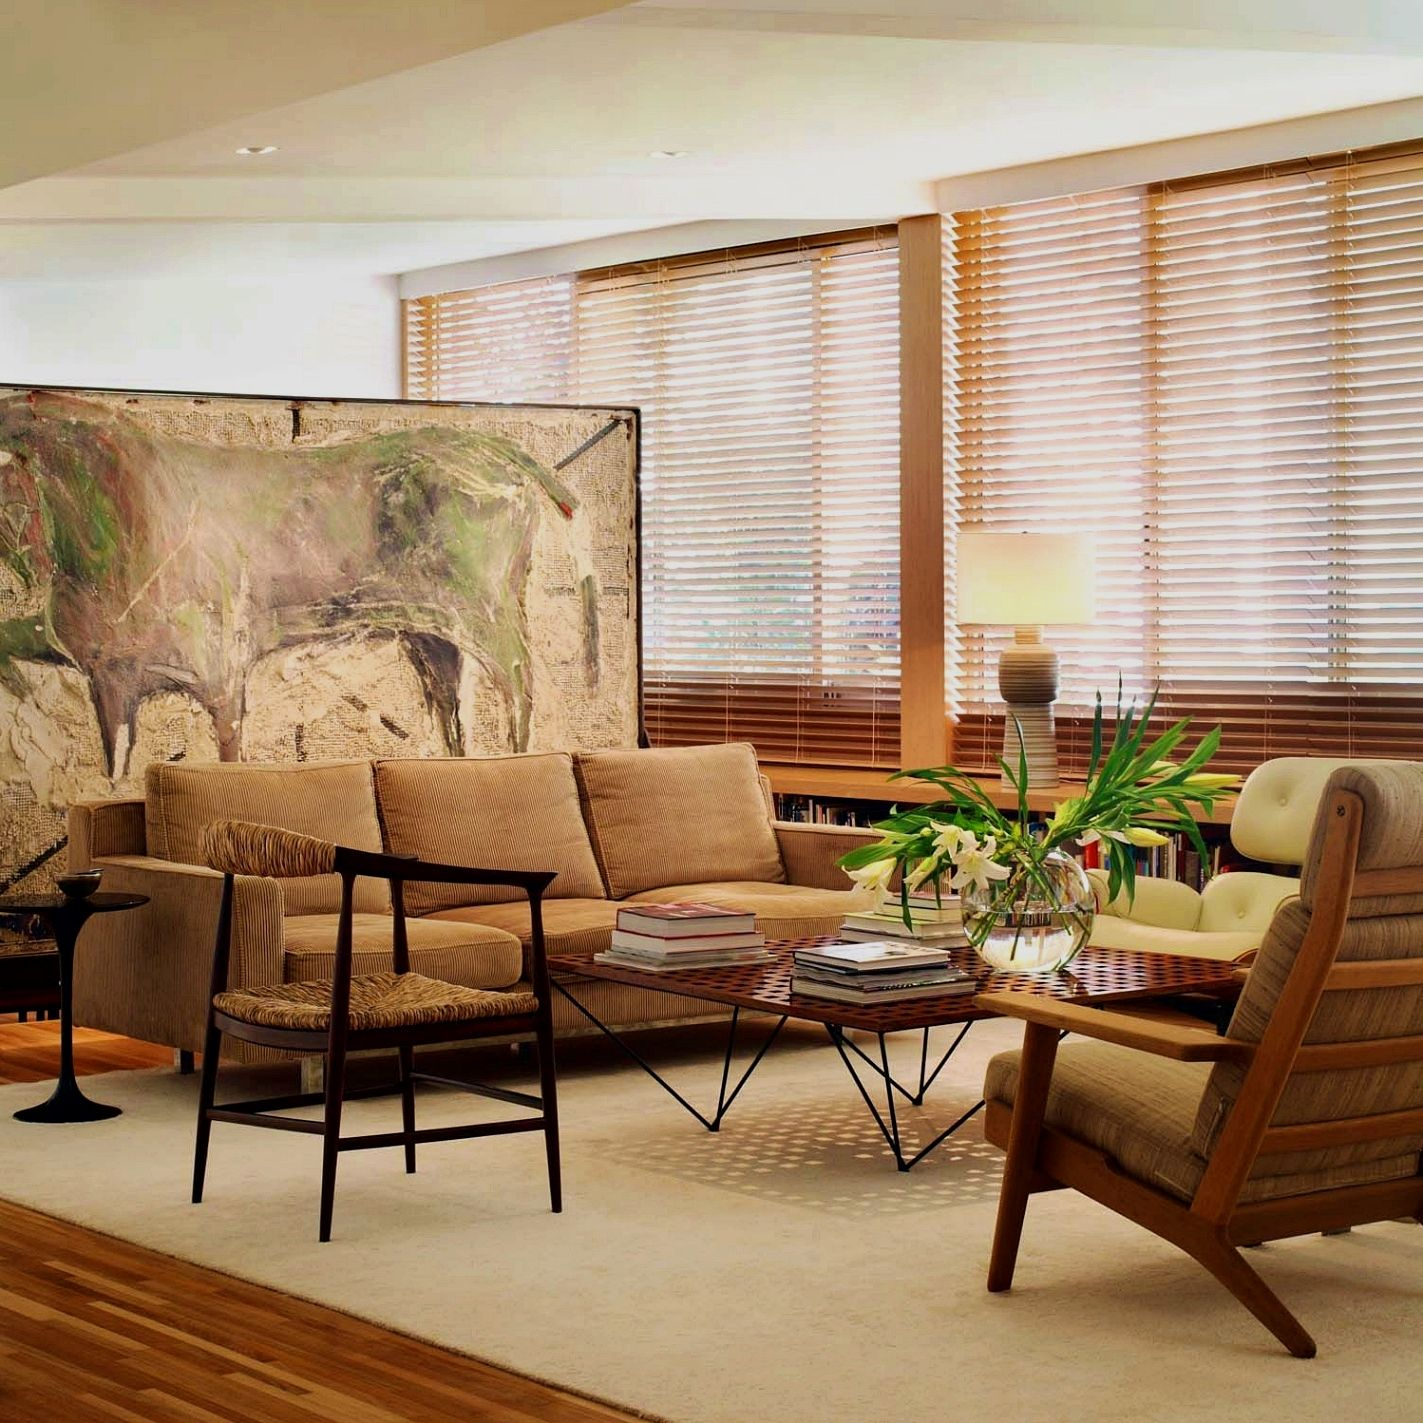 Living Room Additions Ideas: Living Room Decor Tips, In Order To Avoid To Far Of A